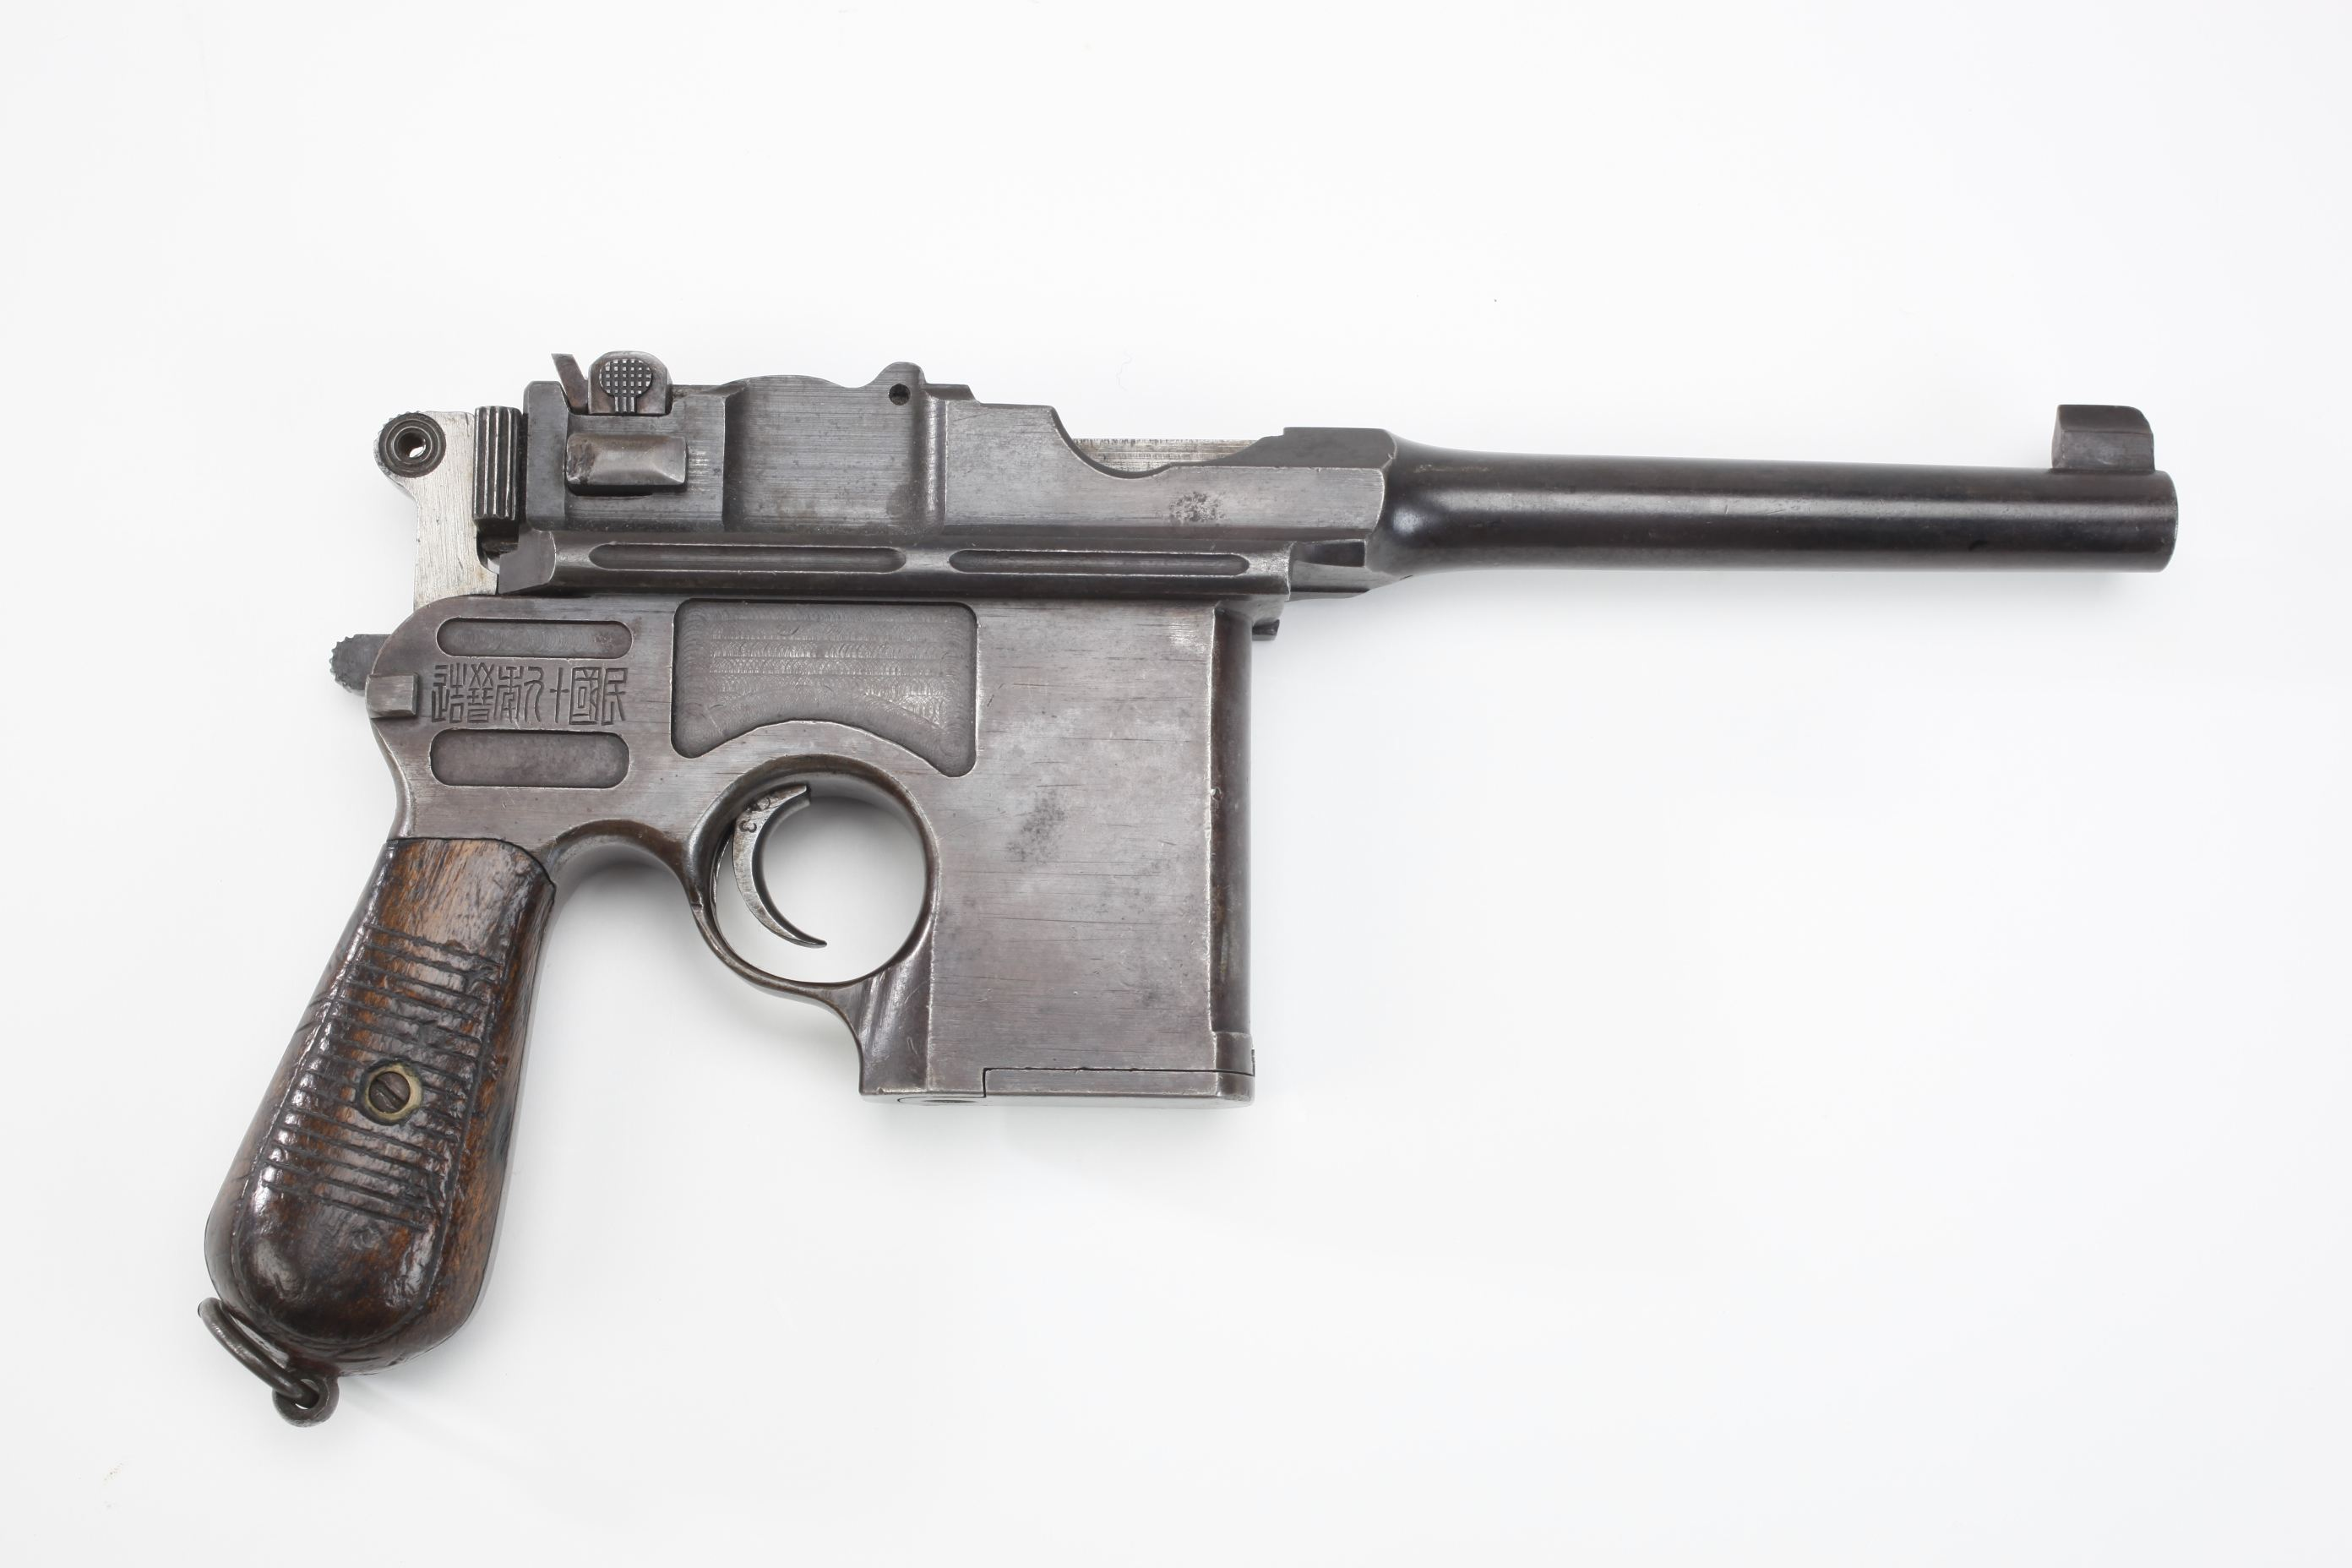 Shangshei Arsenal Mauser Model 1896 Broomhandle Semi Automatic Pistol